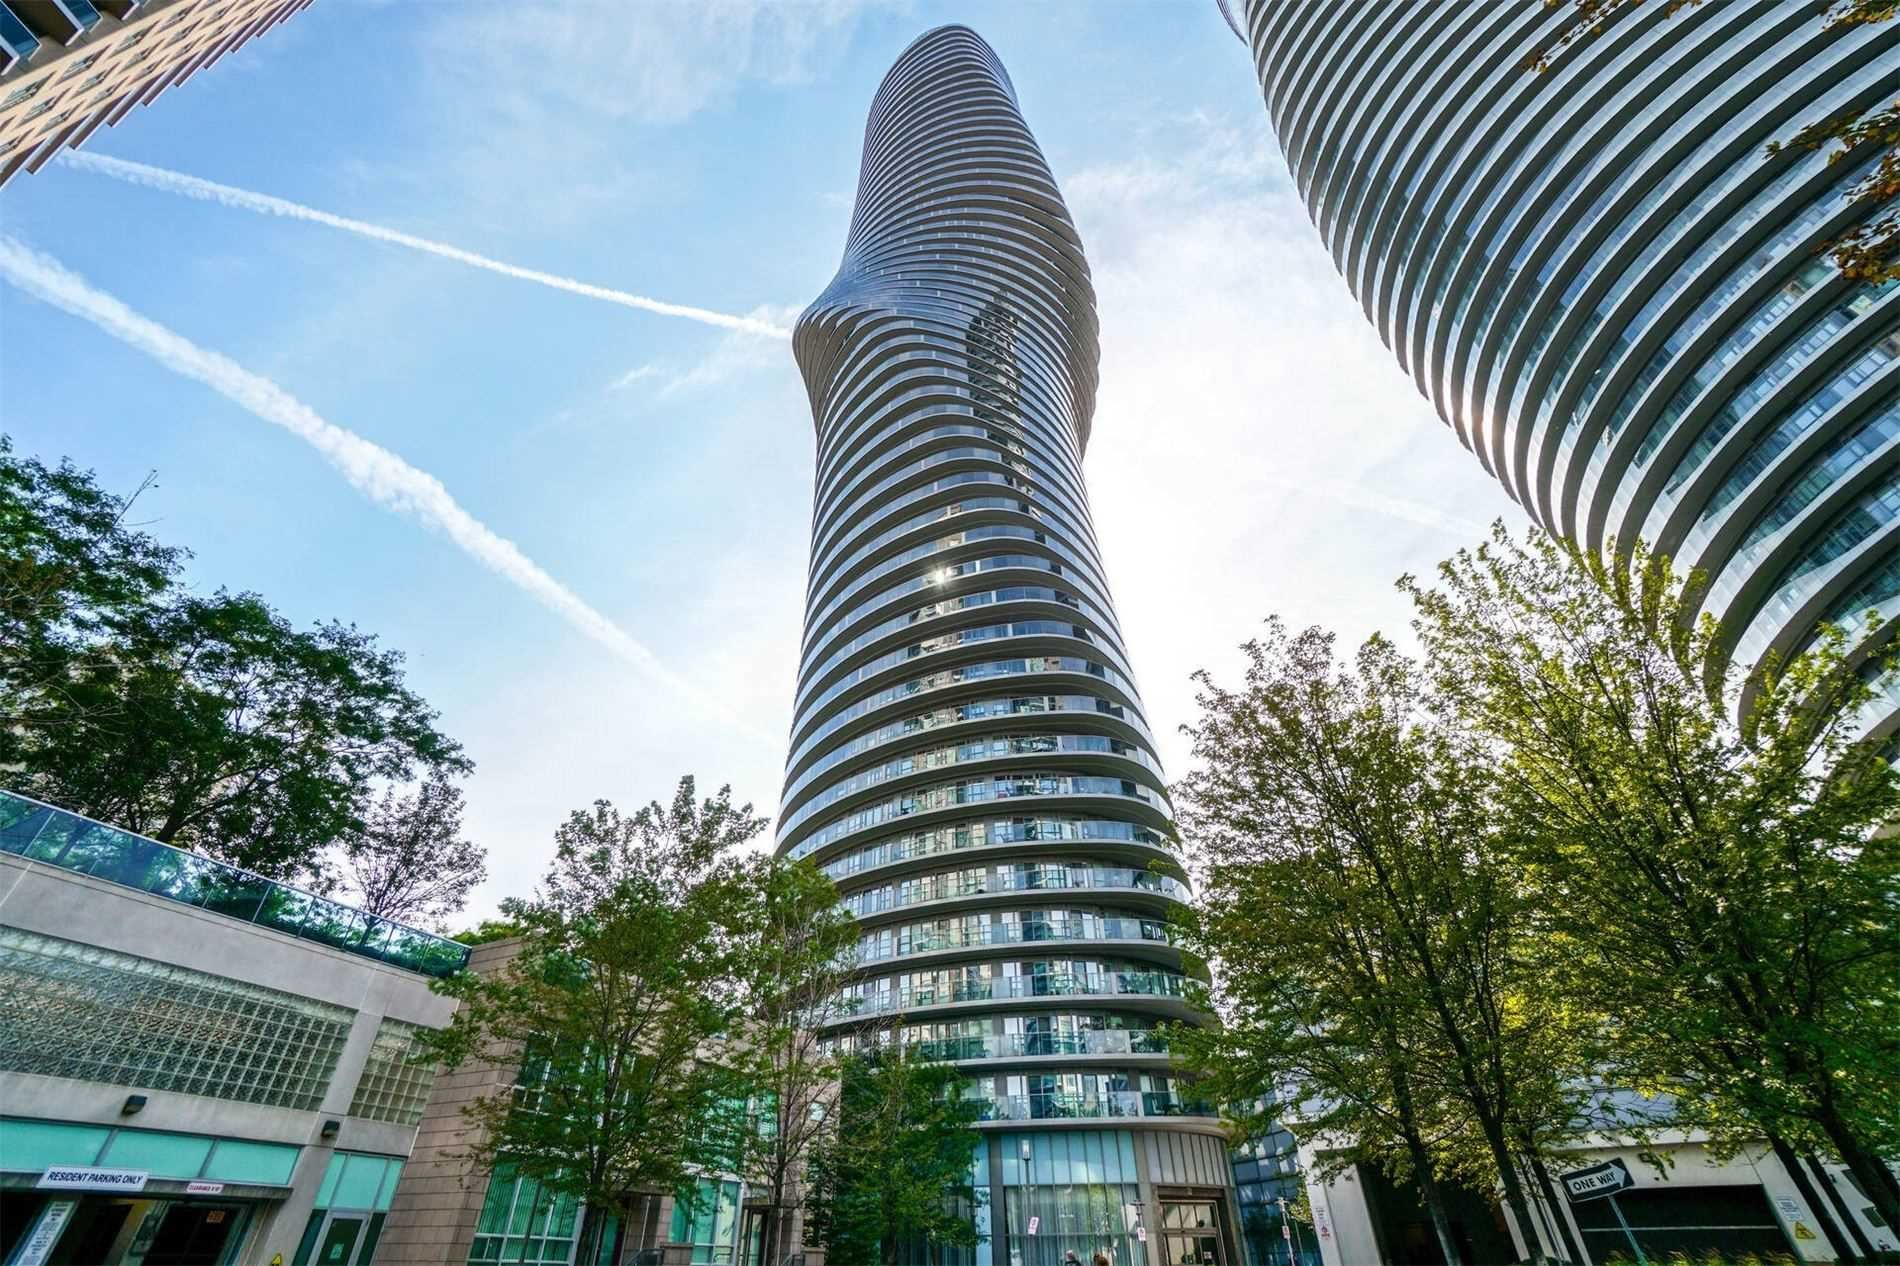 60 Absolute Ave #3706, Mississauga, ON L4Z 0A9 - MLS#: W5385536